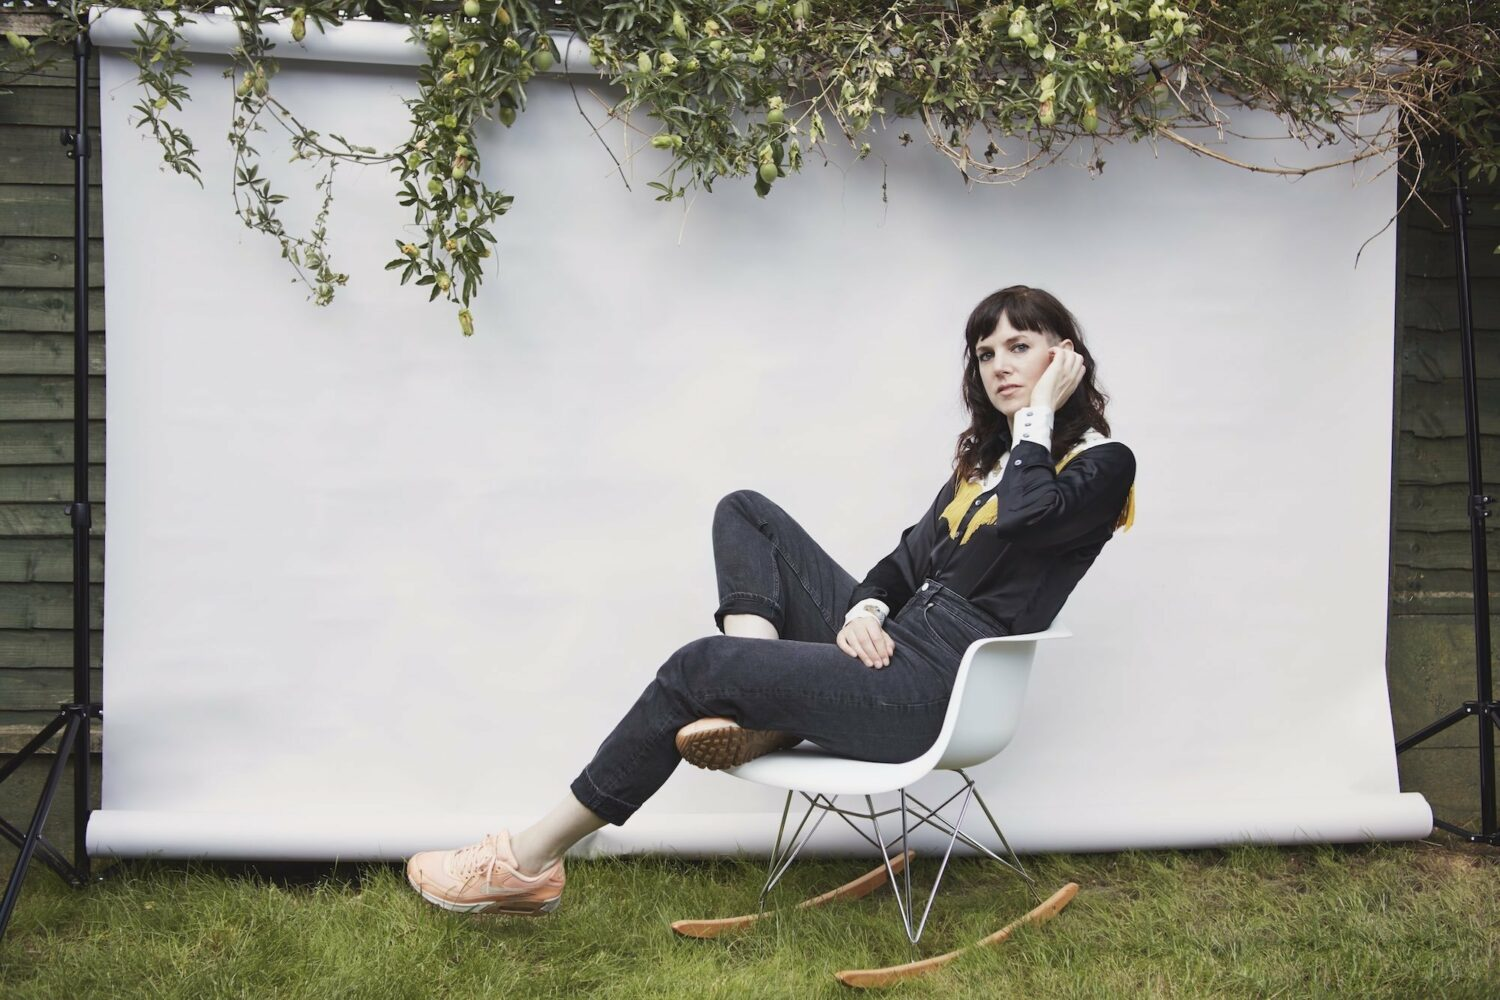 Anna Meredith shares 'Killjoy' video